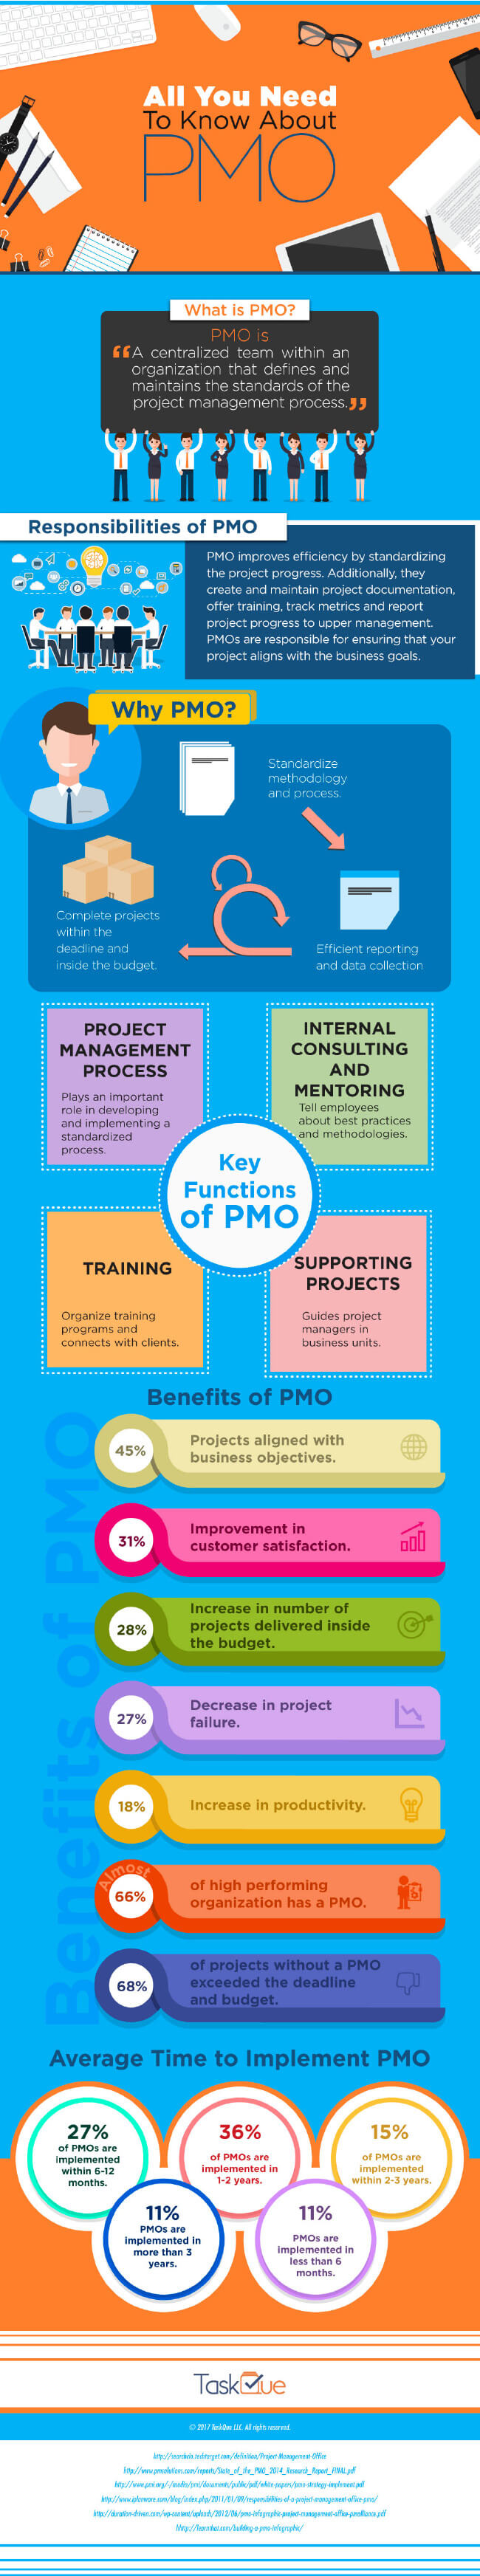 Image titled 7 top benefits of implementing a pmo